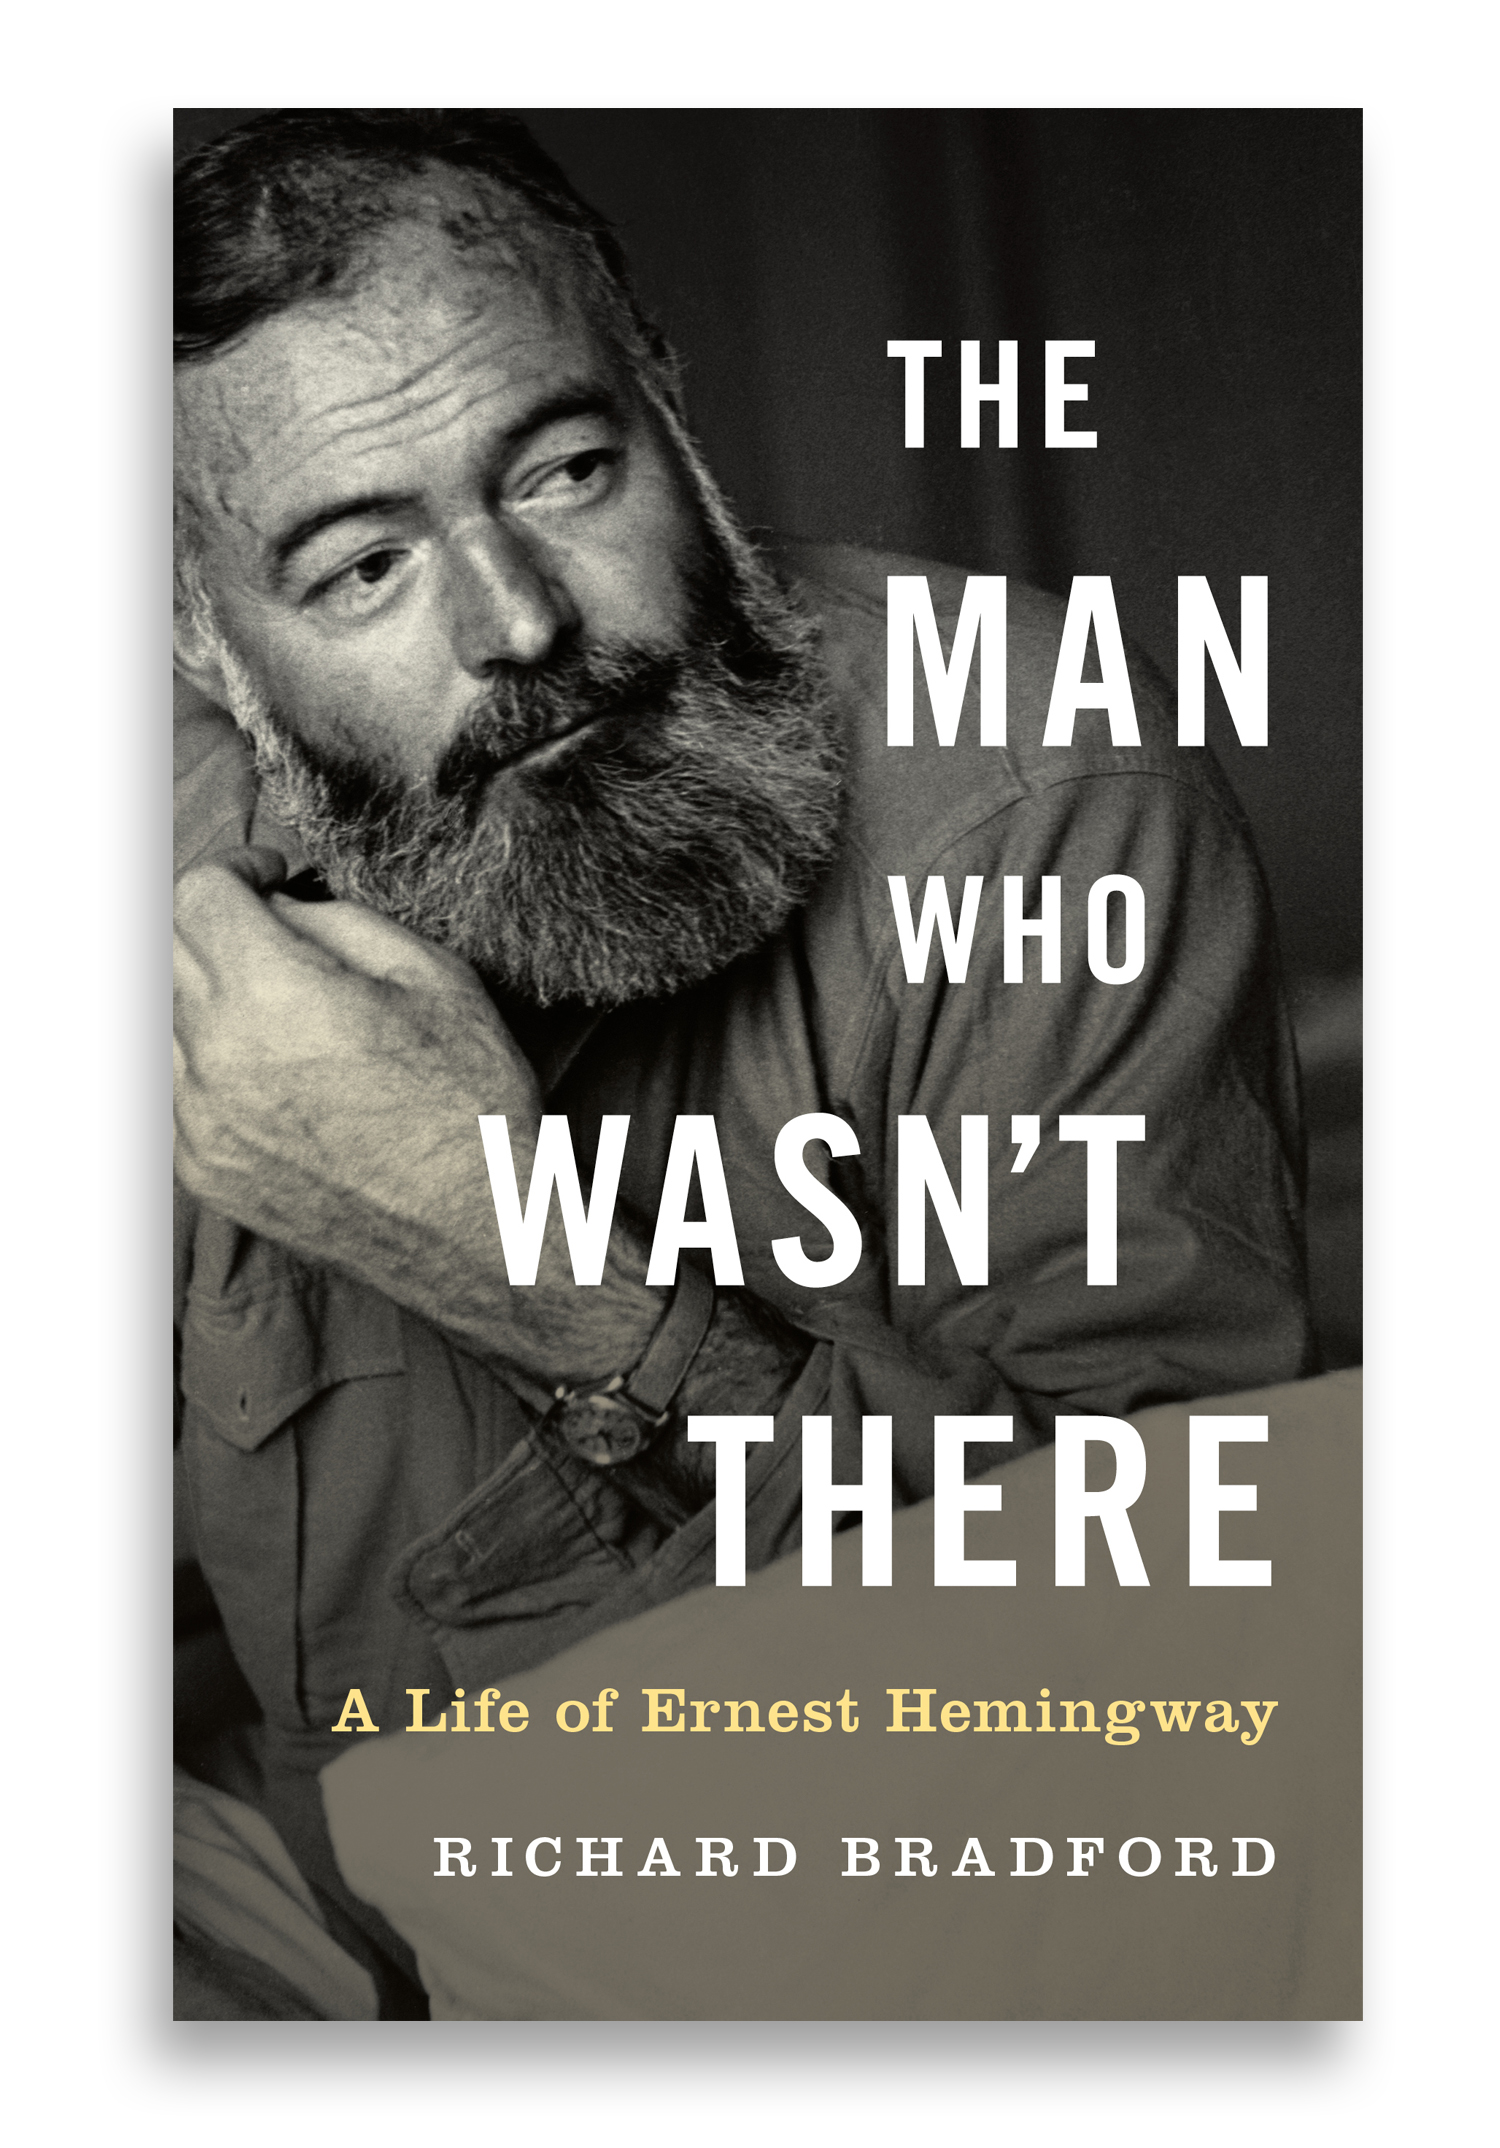 the man who wasn't there.jpg